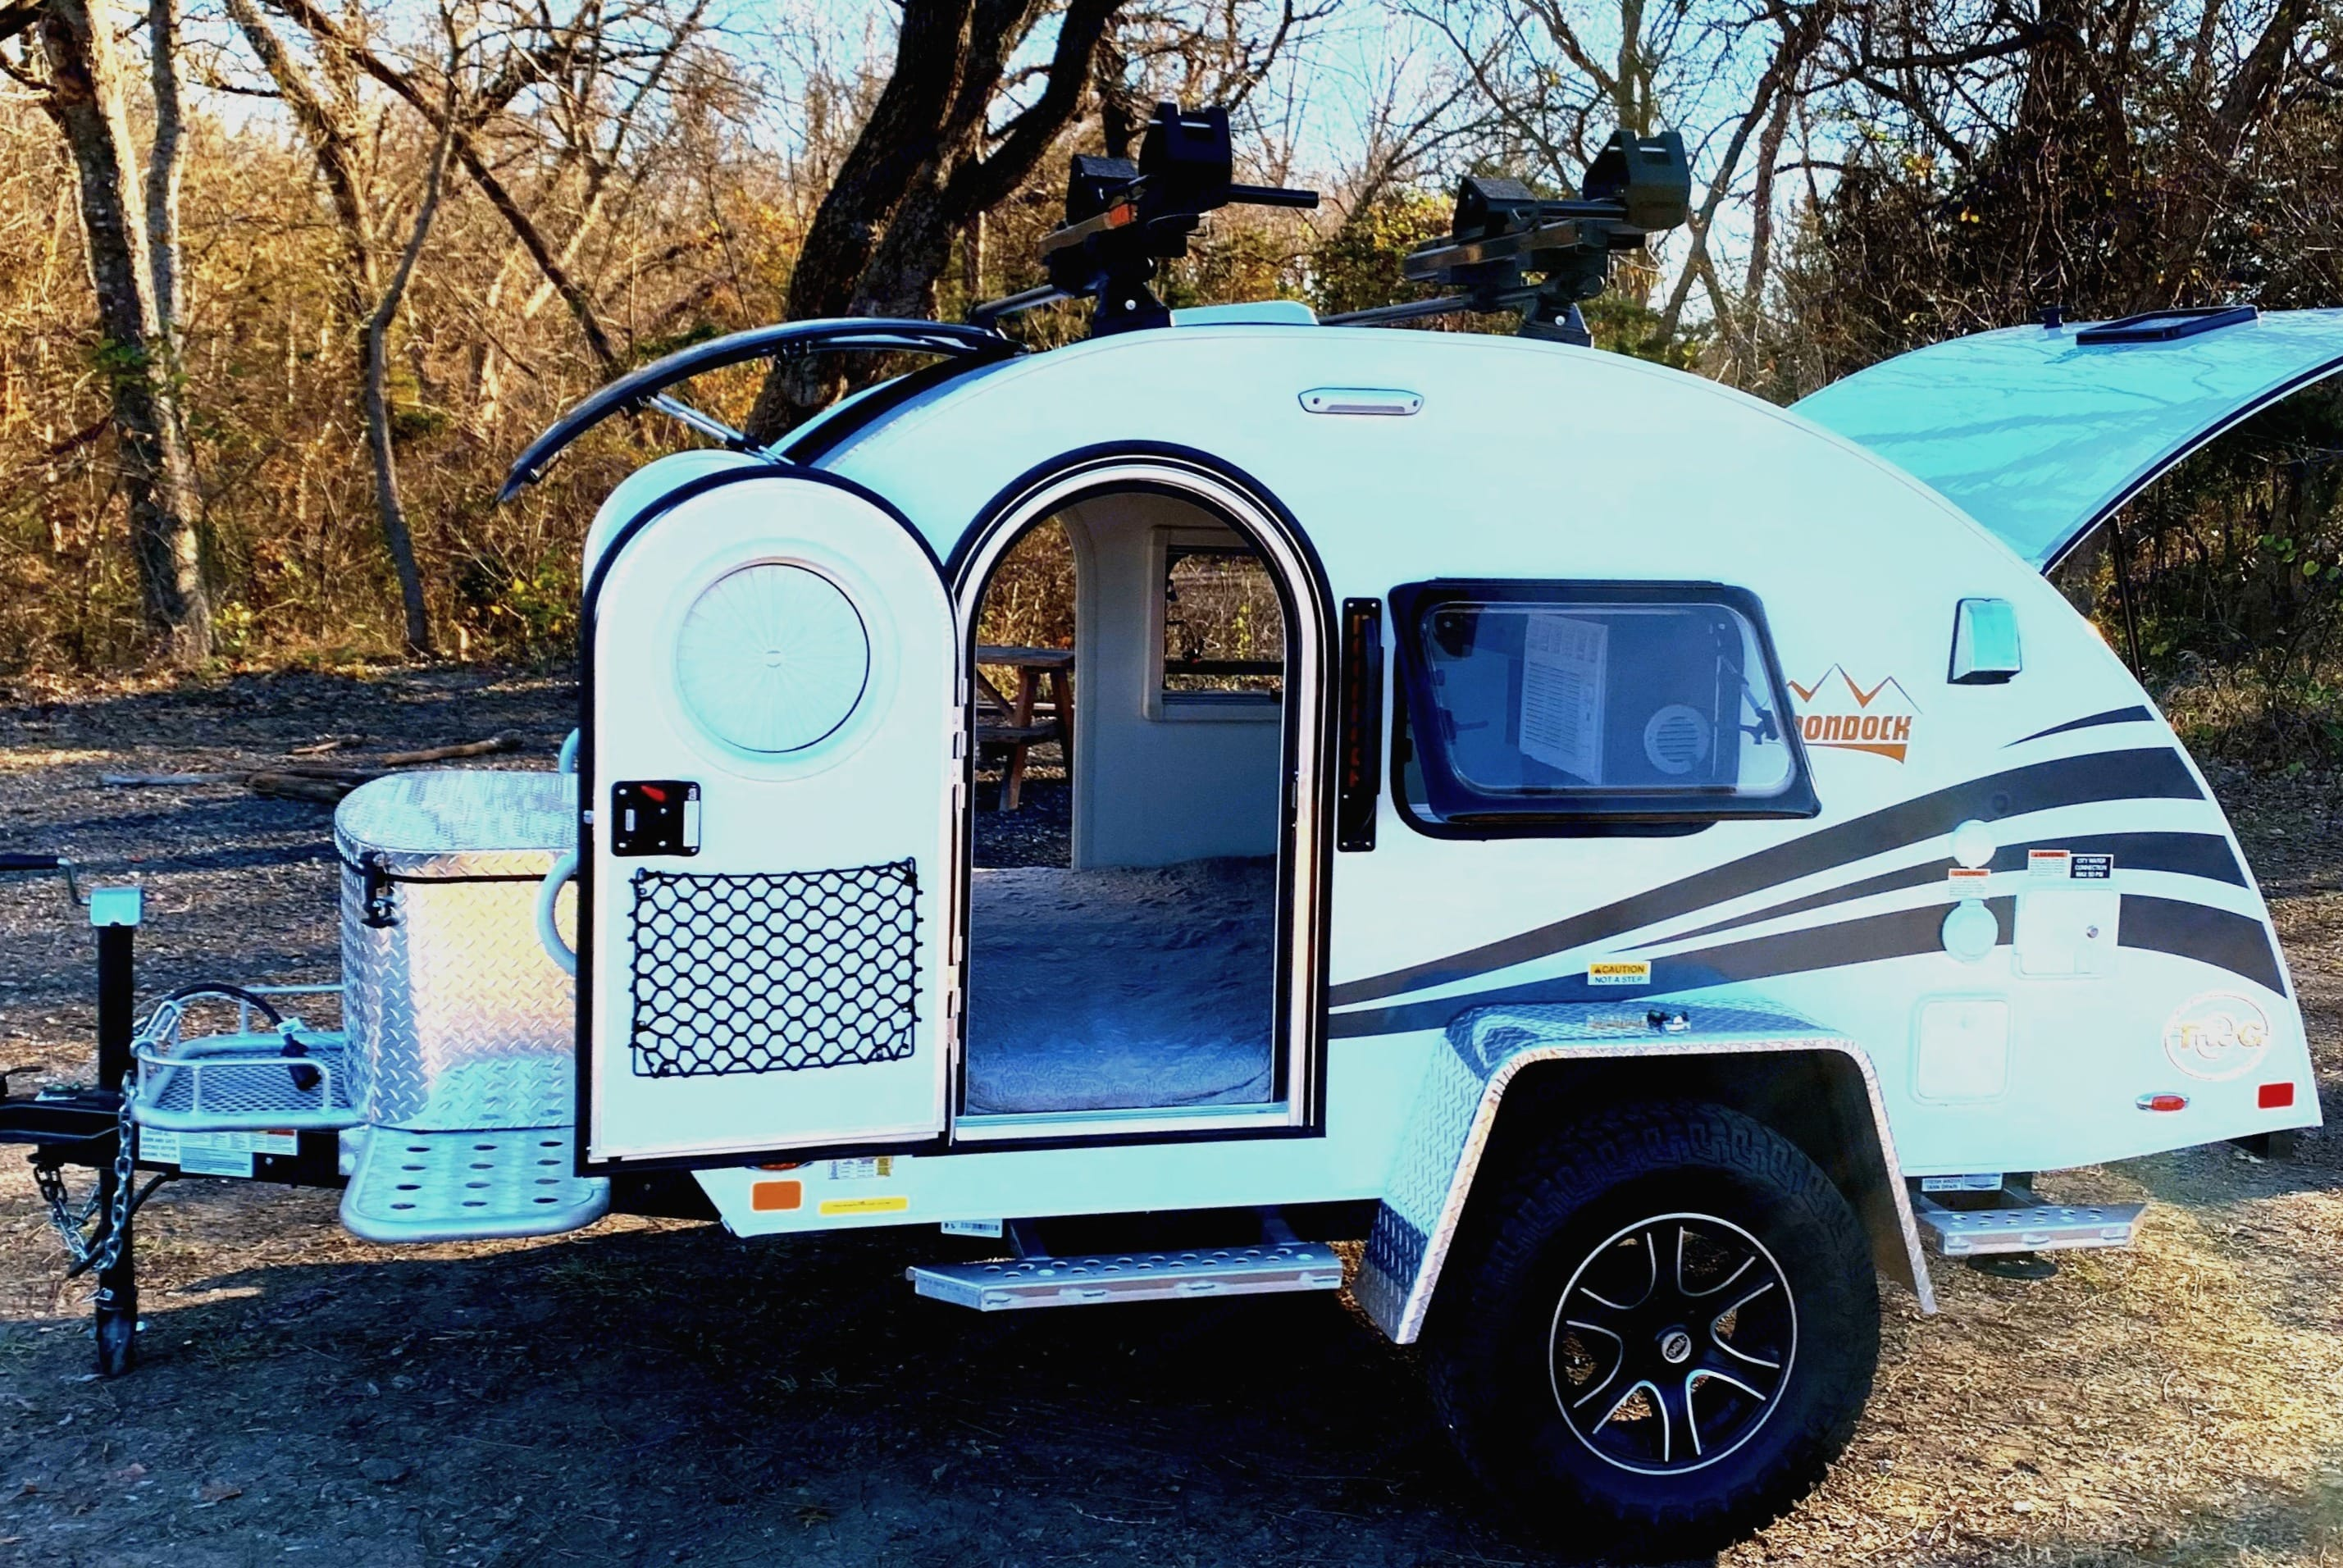 Easy access King size bedroom inside, outdoor galley out back, and easy load kayak rack on top. American Teardrop TRL 2021